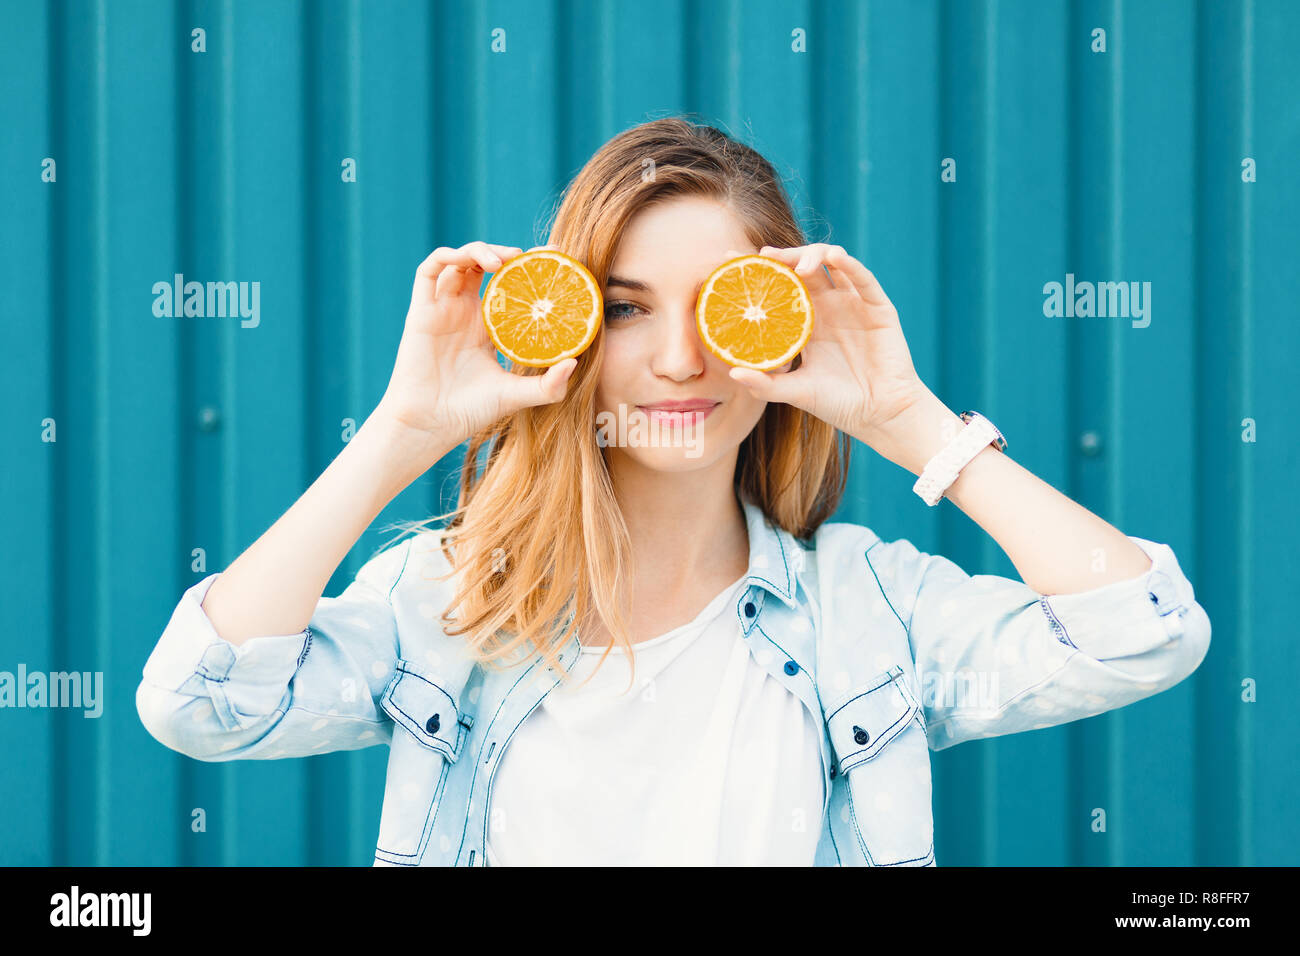 Carefree young beautiful girl using two halfs of oranges instead of glasses over her eyes over blue background. - Stock Image